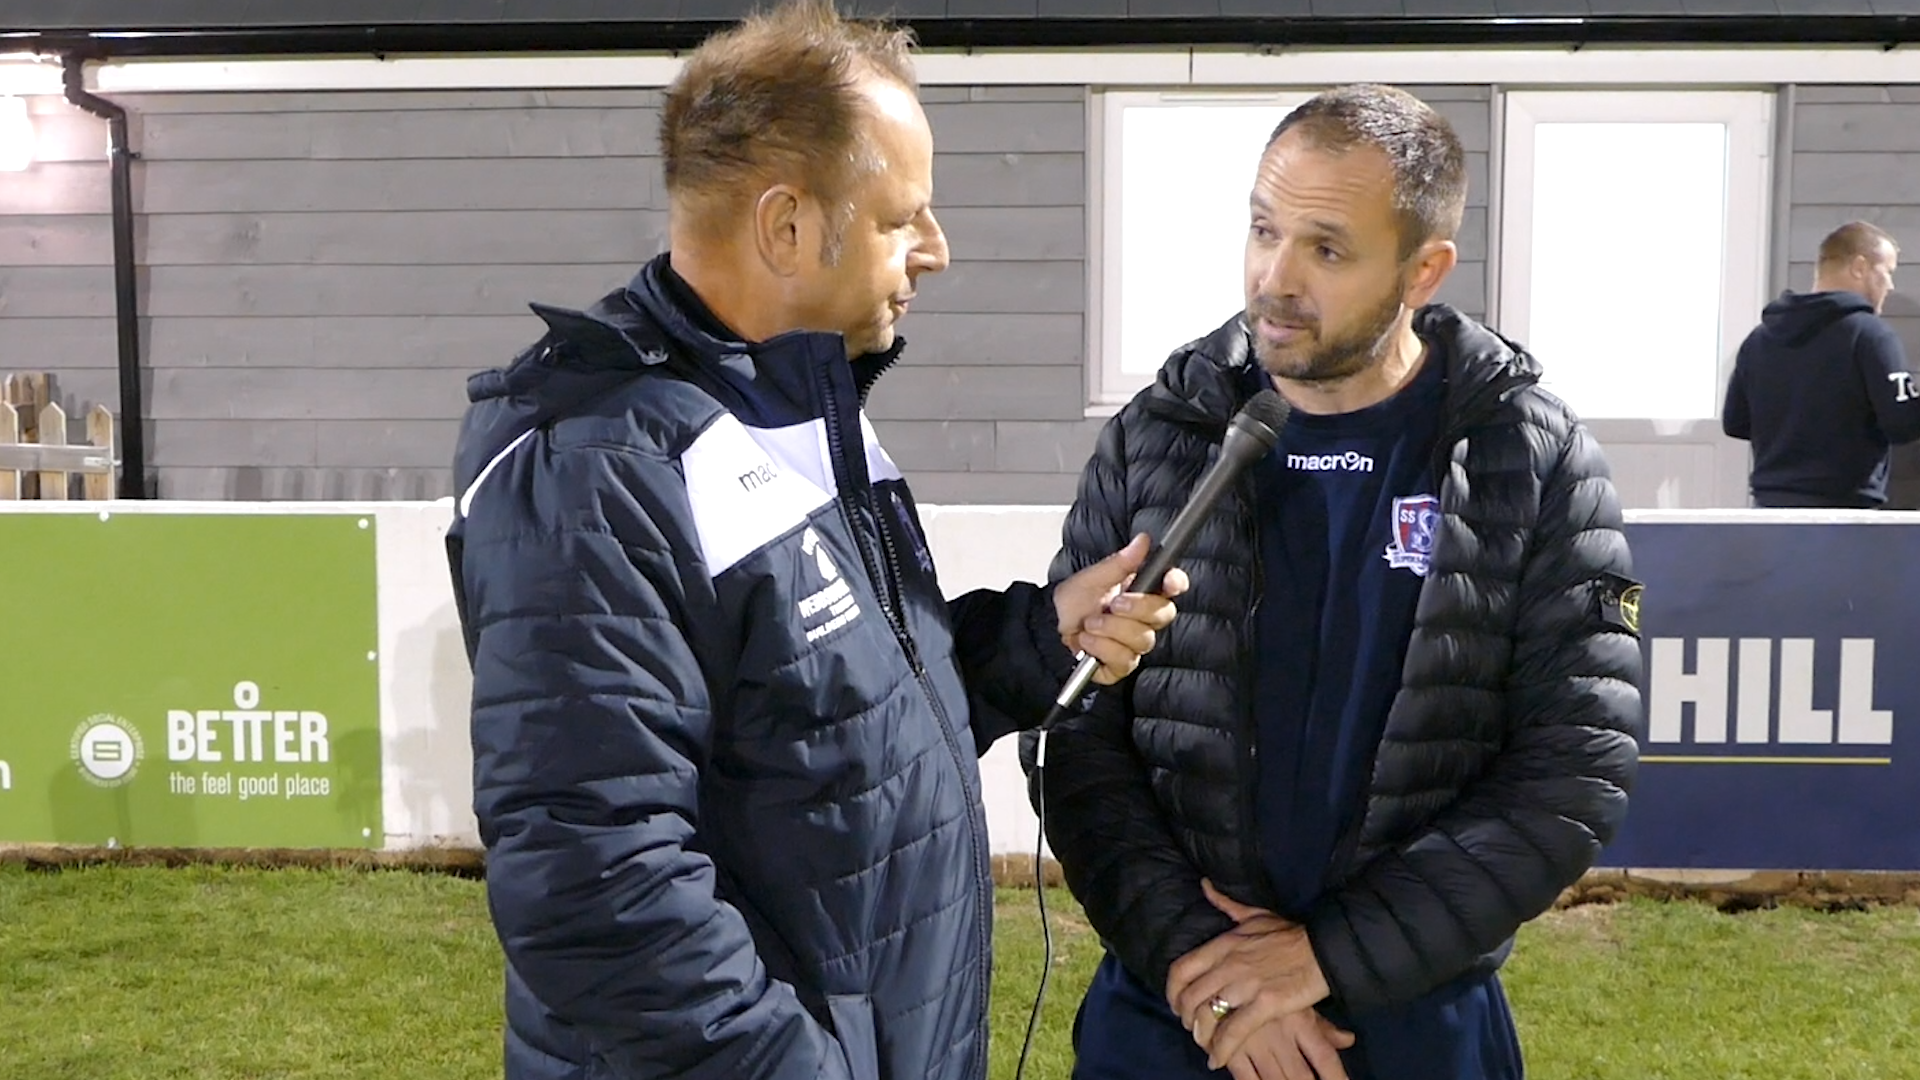 Lee Spalding post match after Cirencester Town